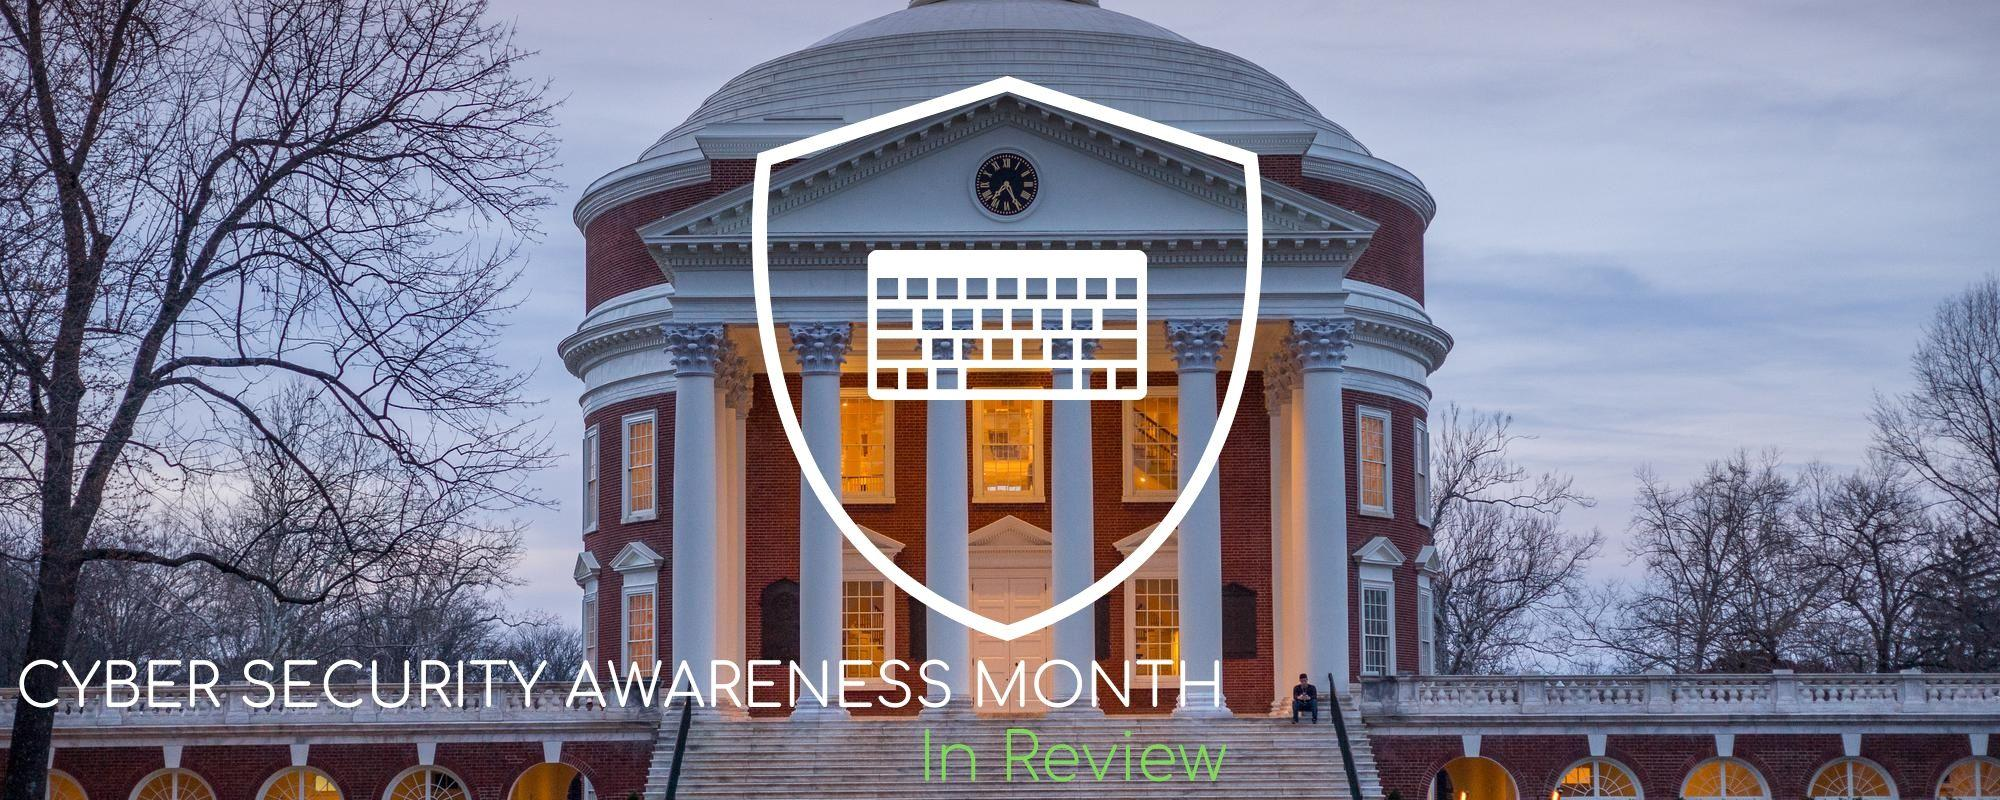 "A photograph of the Rotunda, a shield surrounding a keyboard superimposed on top, and text reading ""Cyber Security Awareness Month in Review."""